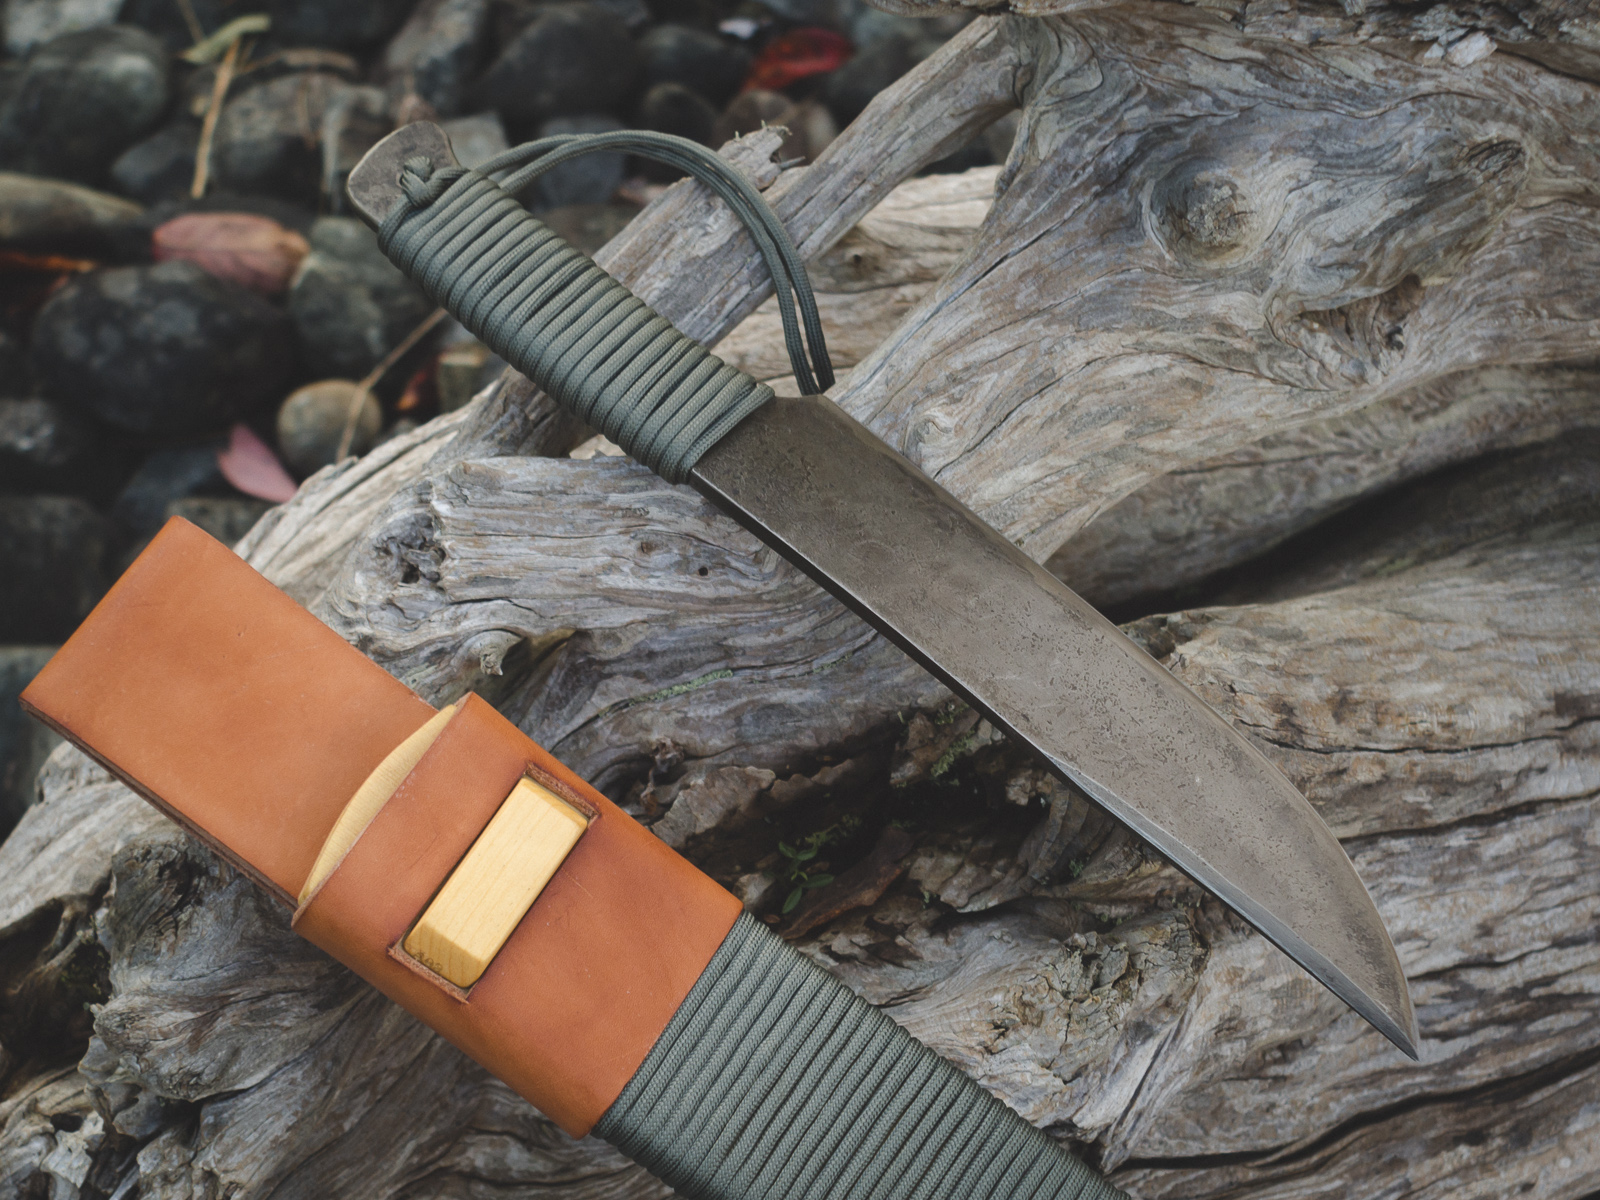 Island Blacksmith: Hand crafted 309 camp bowie made from reclaimed steel using traditional techniques